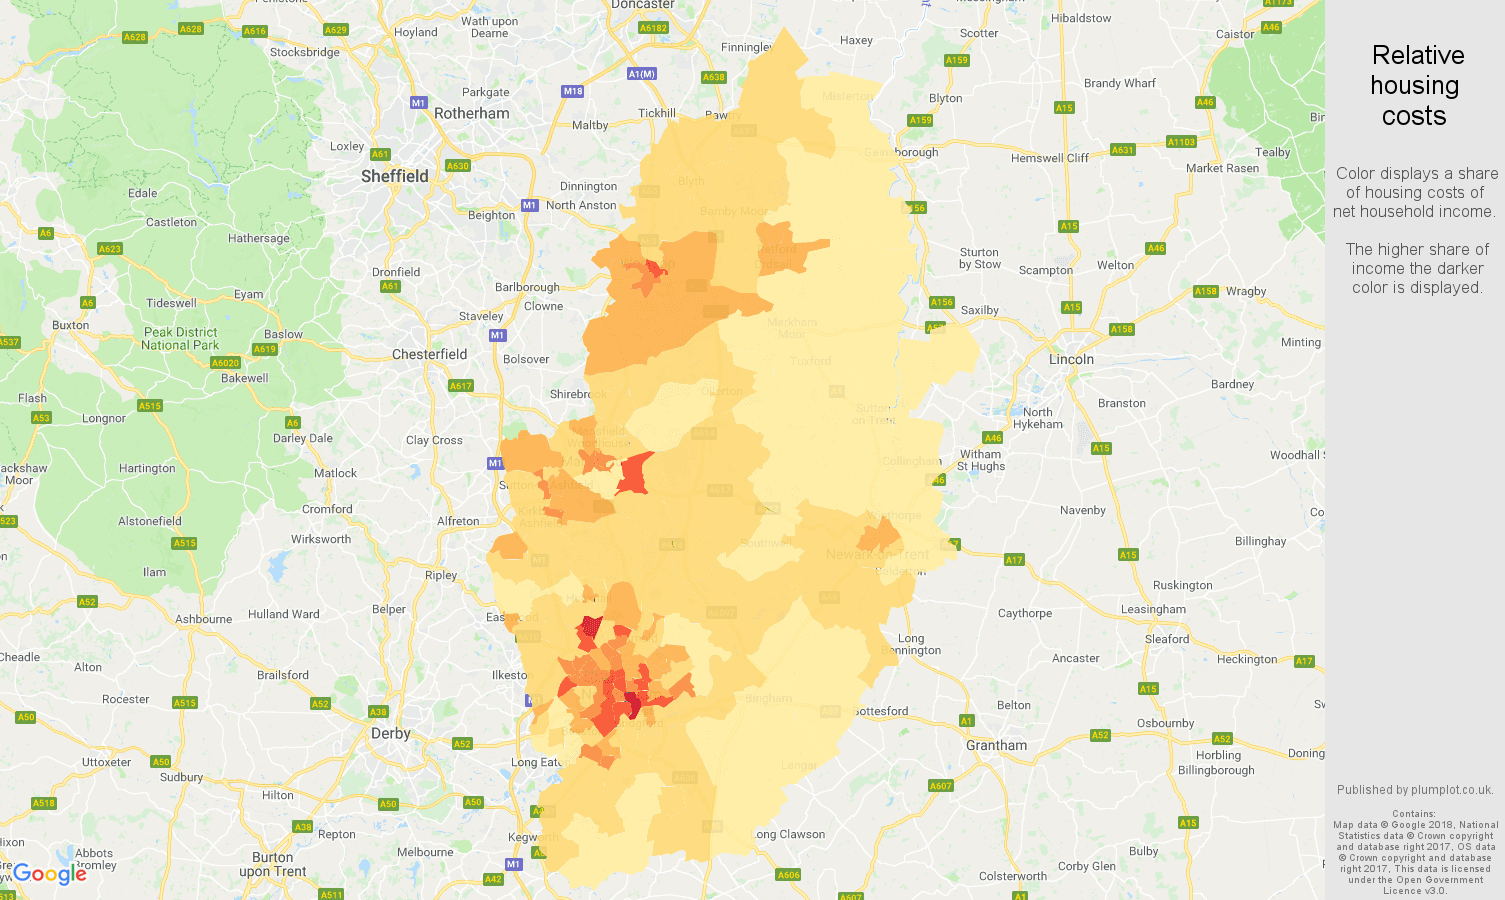 Nottinghamshire relative housing costs map